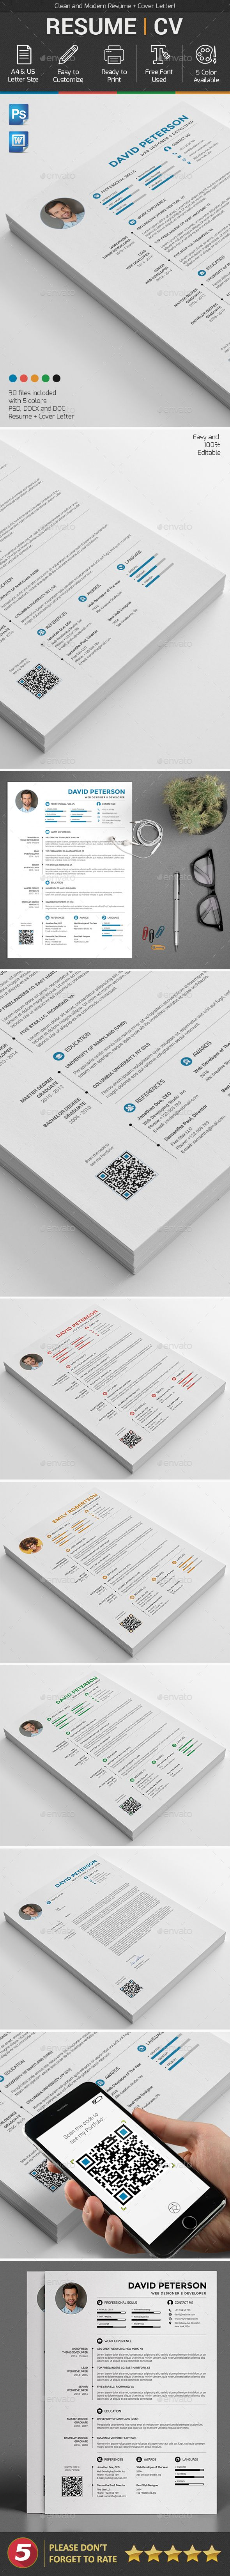 88 Best Cv Images On Pinterest Resume Templates Cv Template And